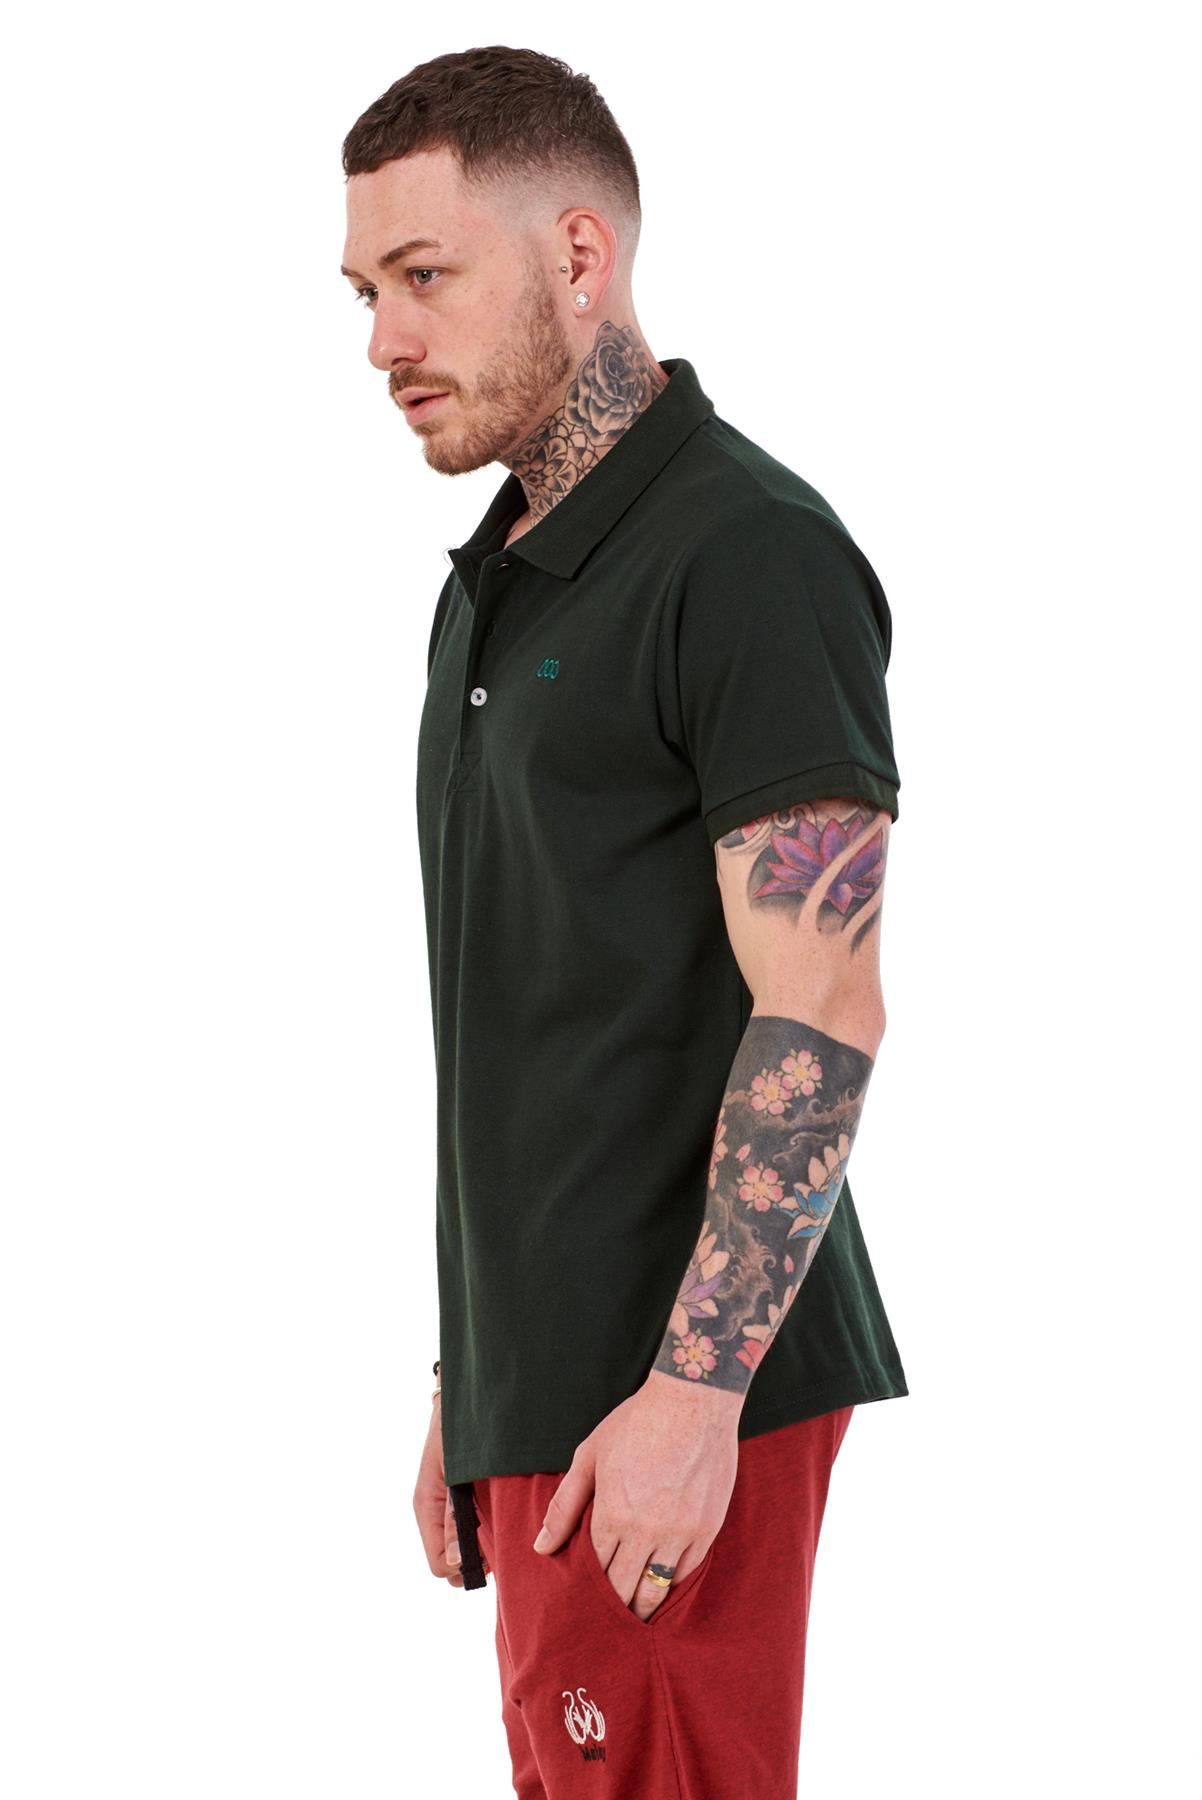 Mens-Plain-Solid-Polo-Cotton-T-Shirts-Regular-fit-Casual-Formal-Shirt-Top-M-XXL thumbnail 21